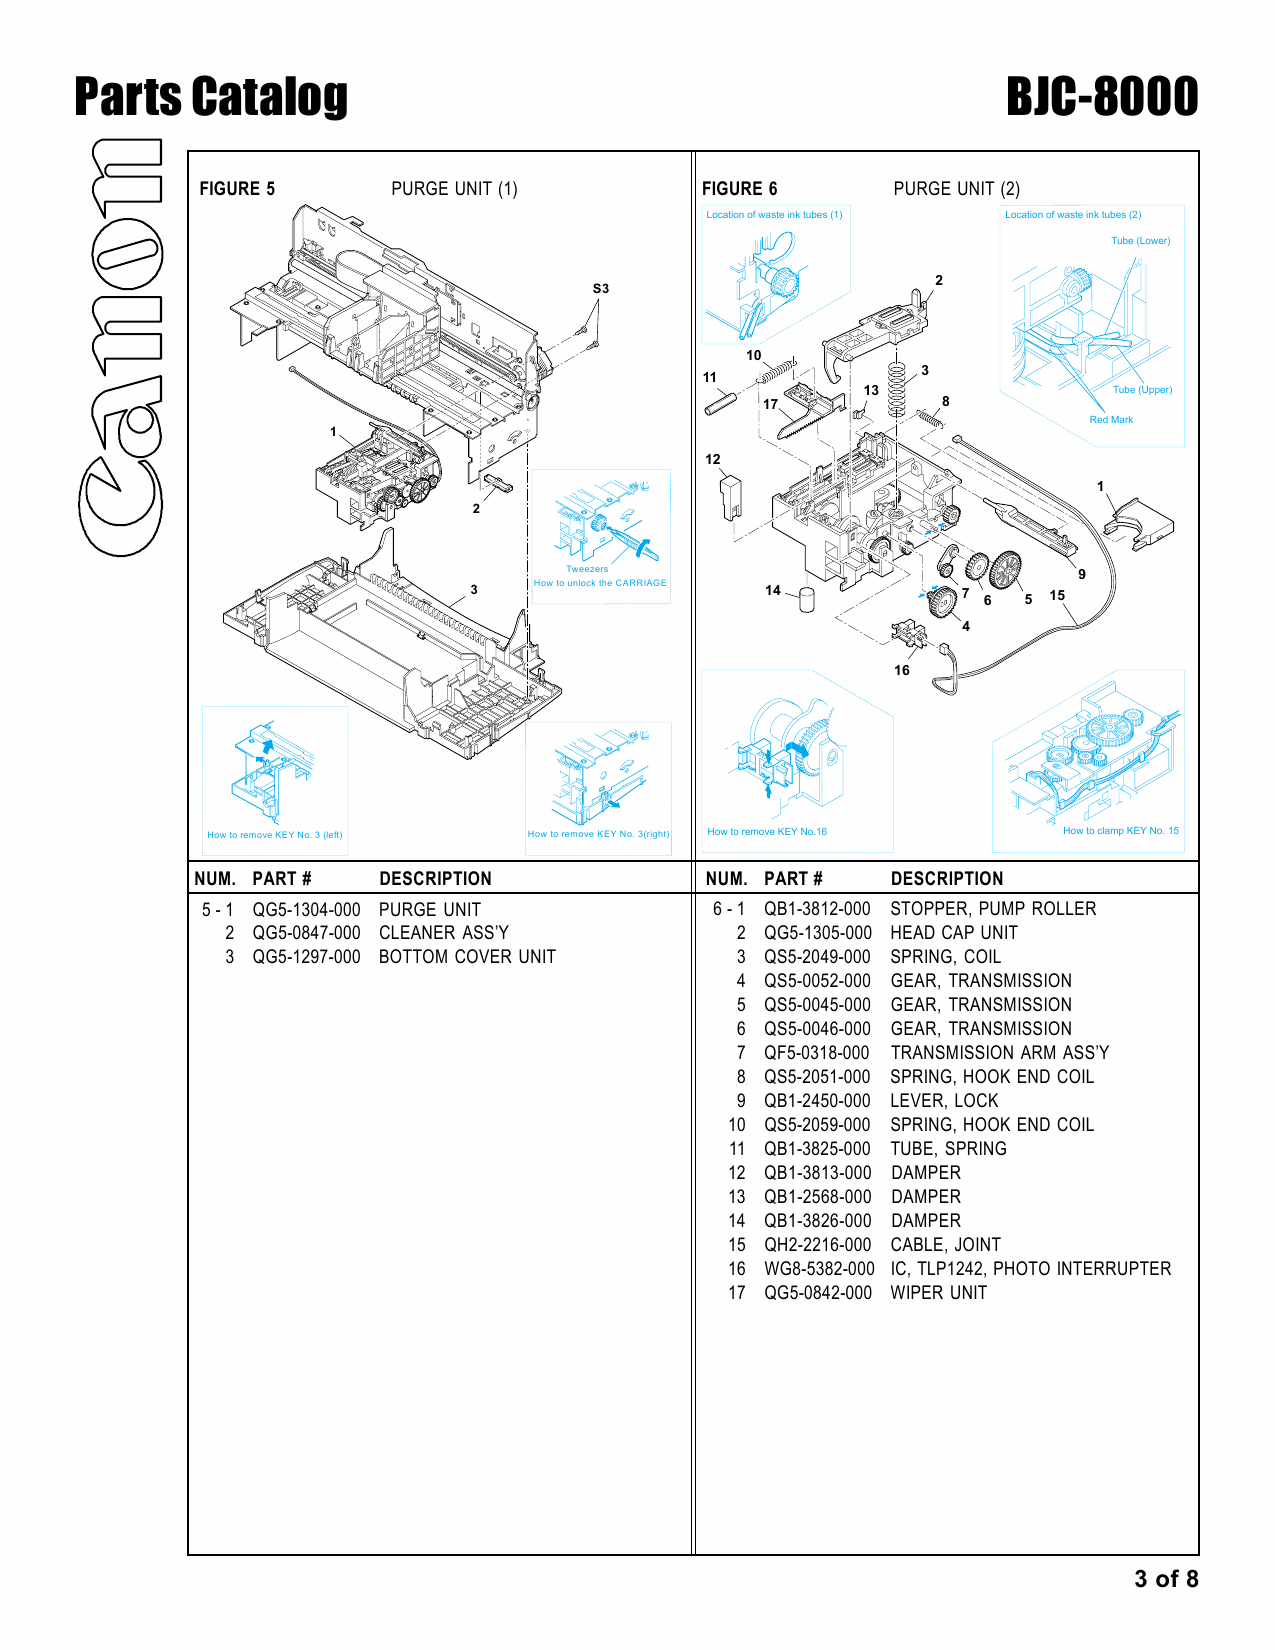 Canon BubbleJet BJC-8000 Parts Catalog Manual-4